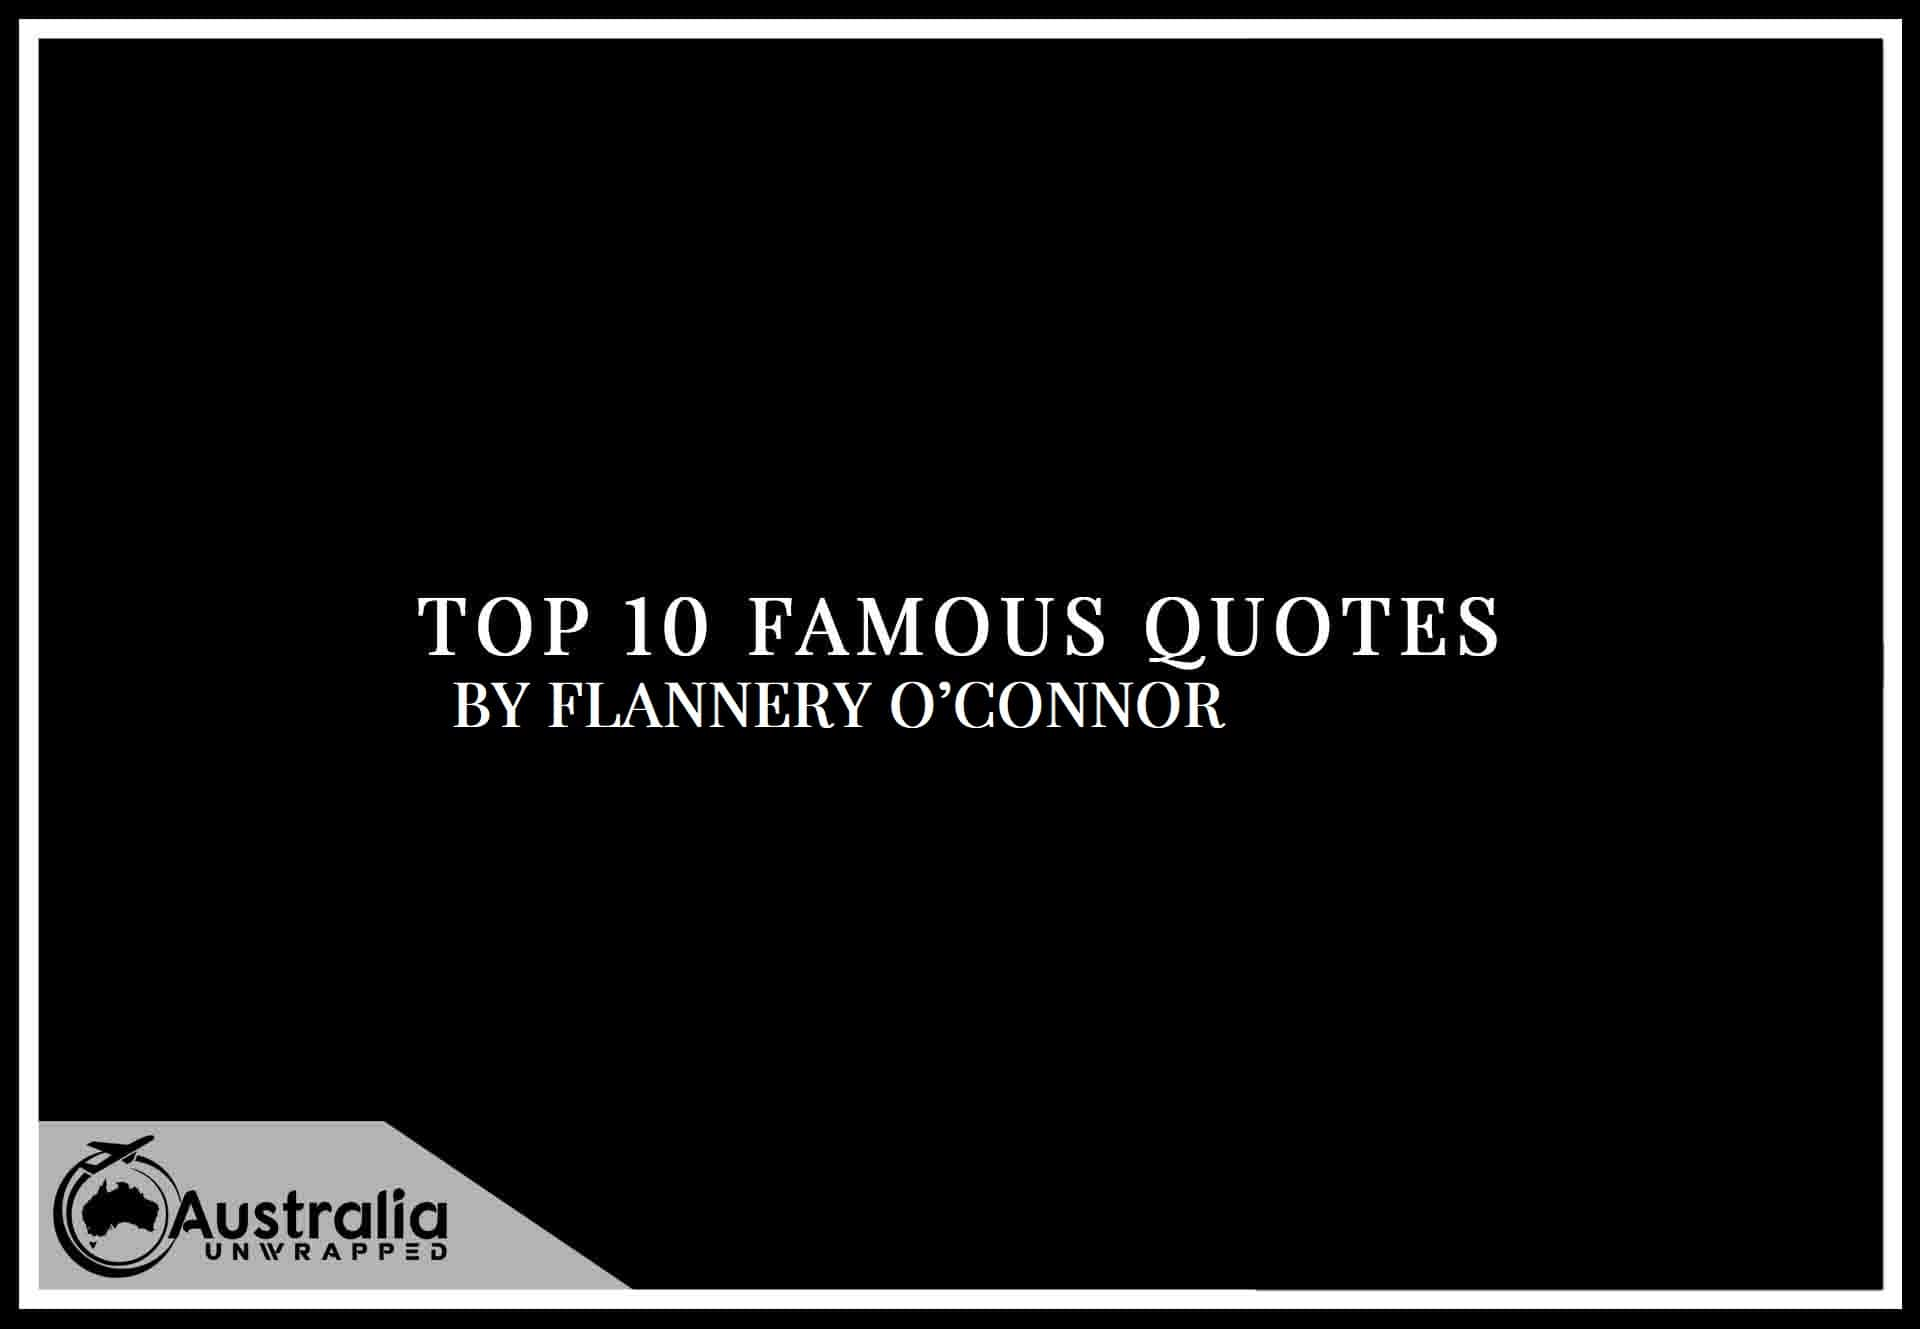 Top 10 Famous Quotes by Author Flannery O'Connor